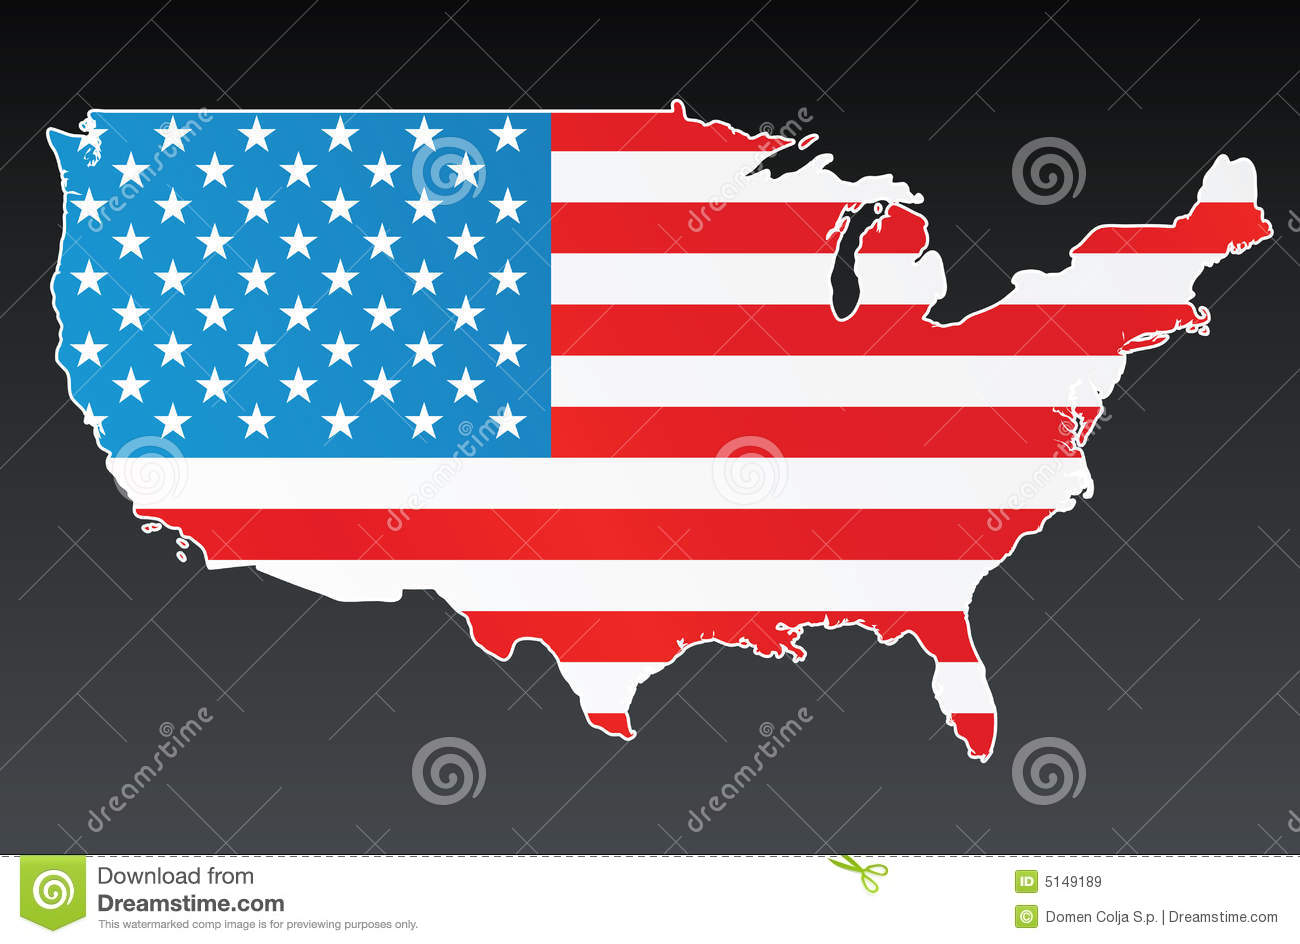 Free us map flag clipart png transparent library USA Map With US Flag Royalty Free Stock Images - Image: 5149189 png transparent library